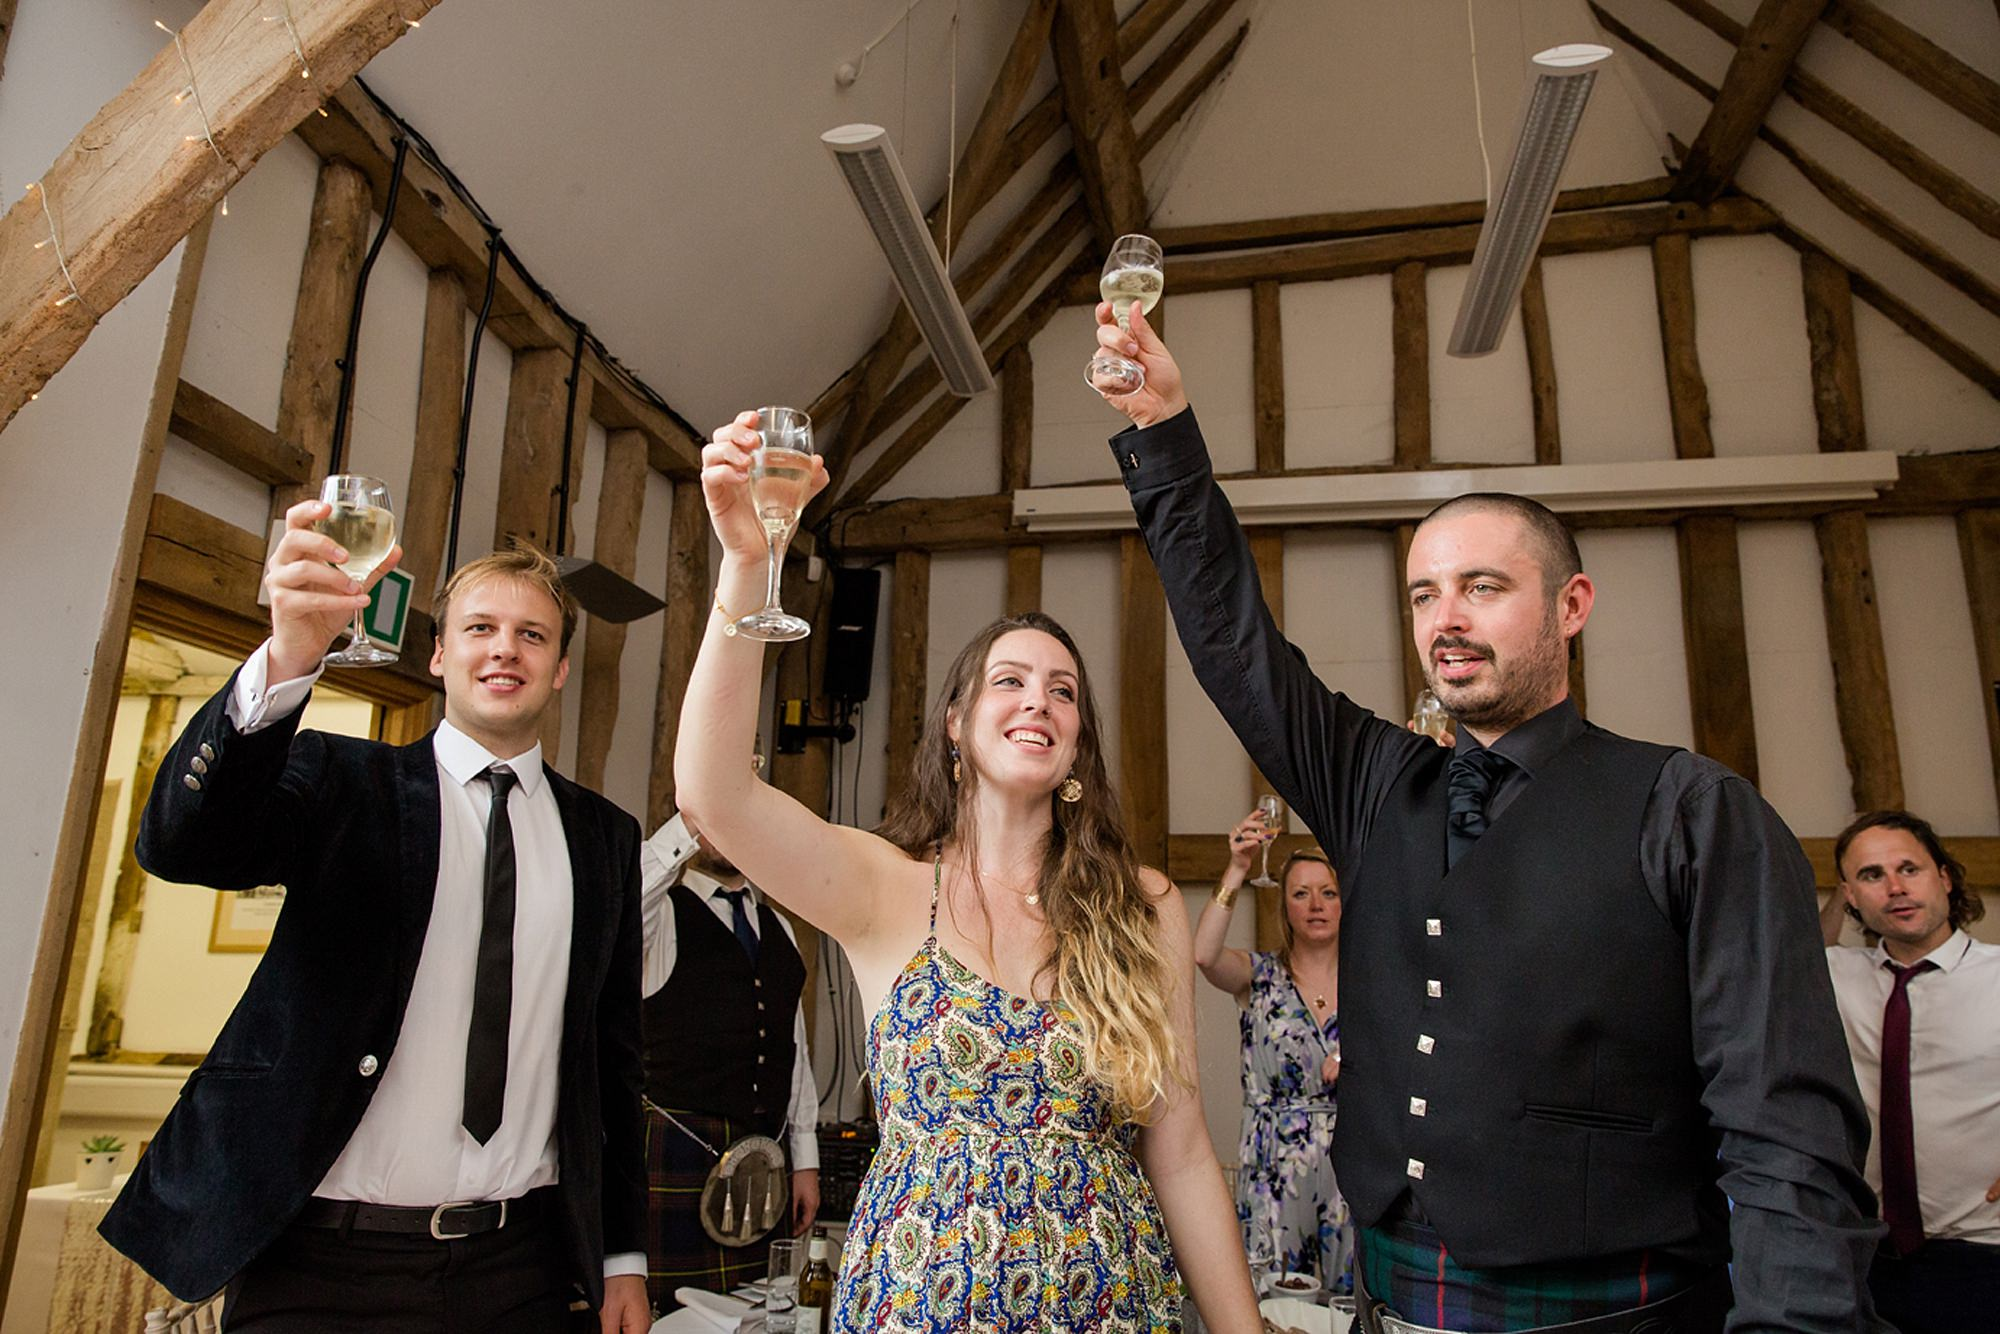 outdoor humanist wedding photography wedding guests toasting